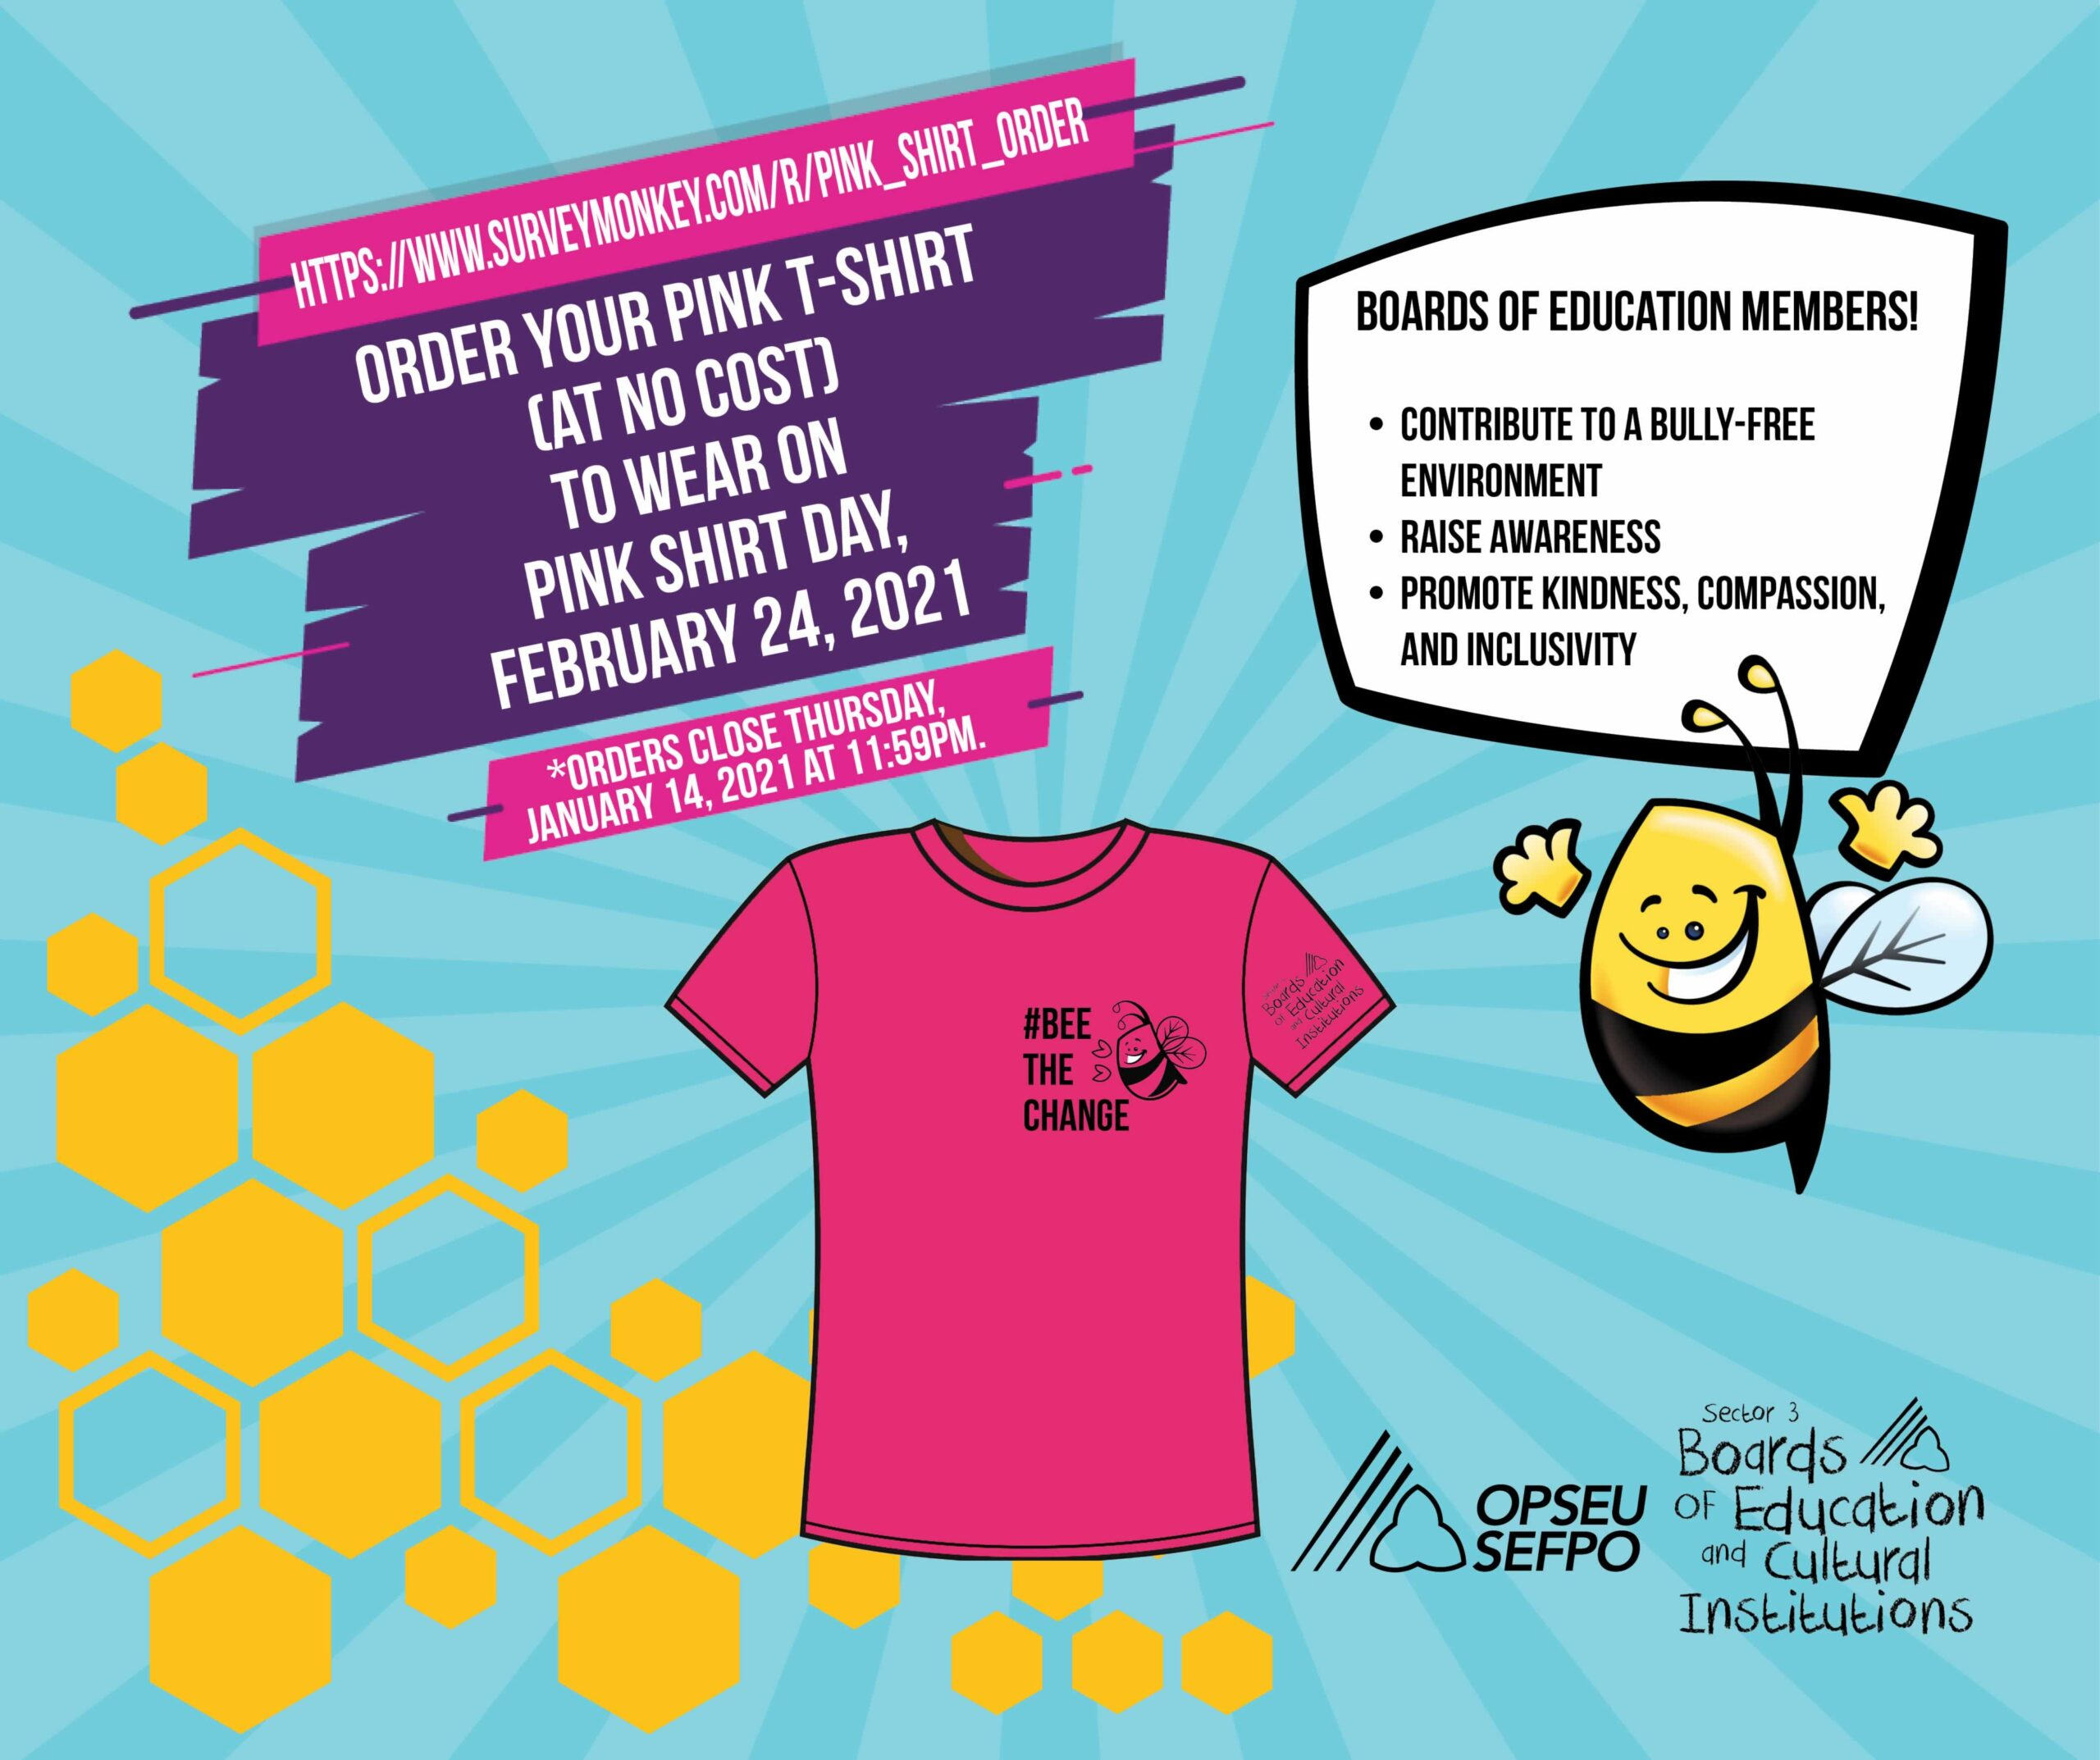 Infographic for Pink Shirt day: Order your pink shirt (at no cost) to wear on pink shirt day February 24 2021